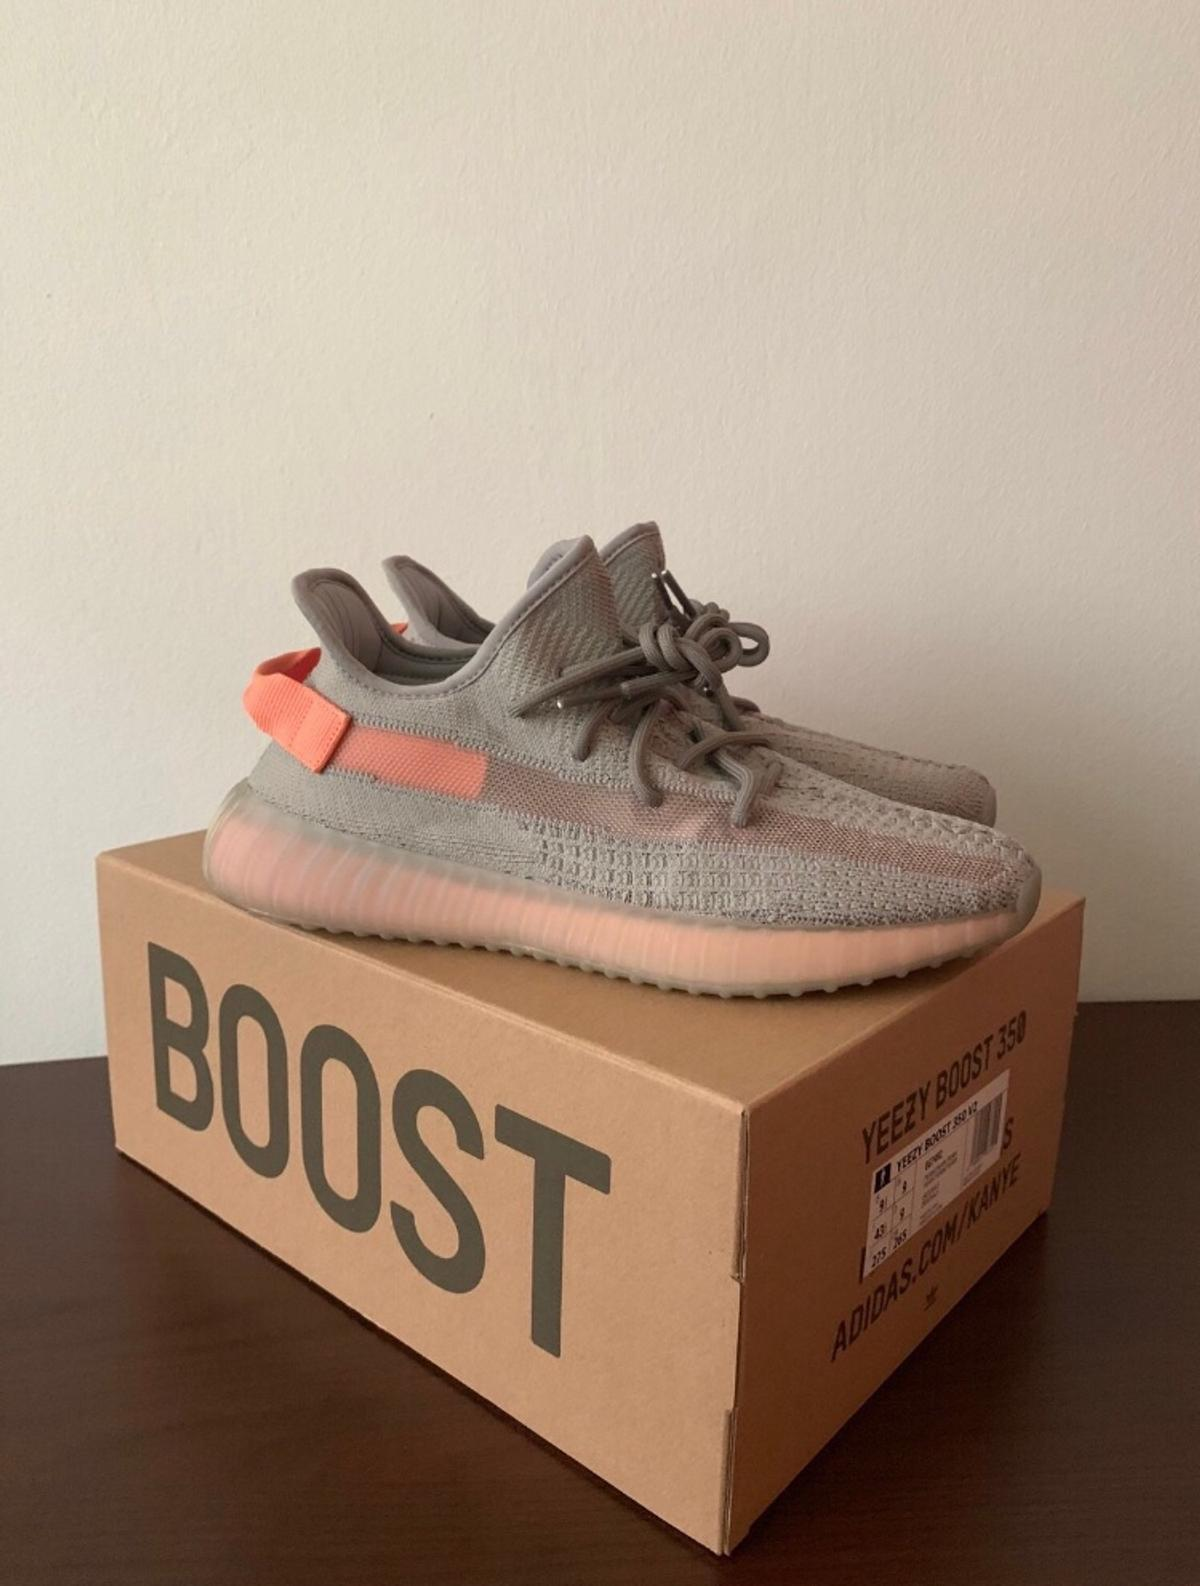 half off 5d1a2 5eaa6 Adidas Yeezy Boost 350 V2 TRFRM